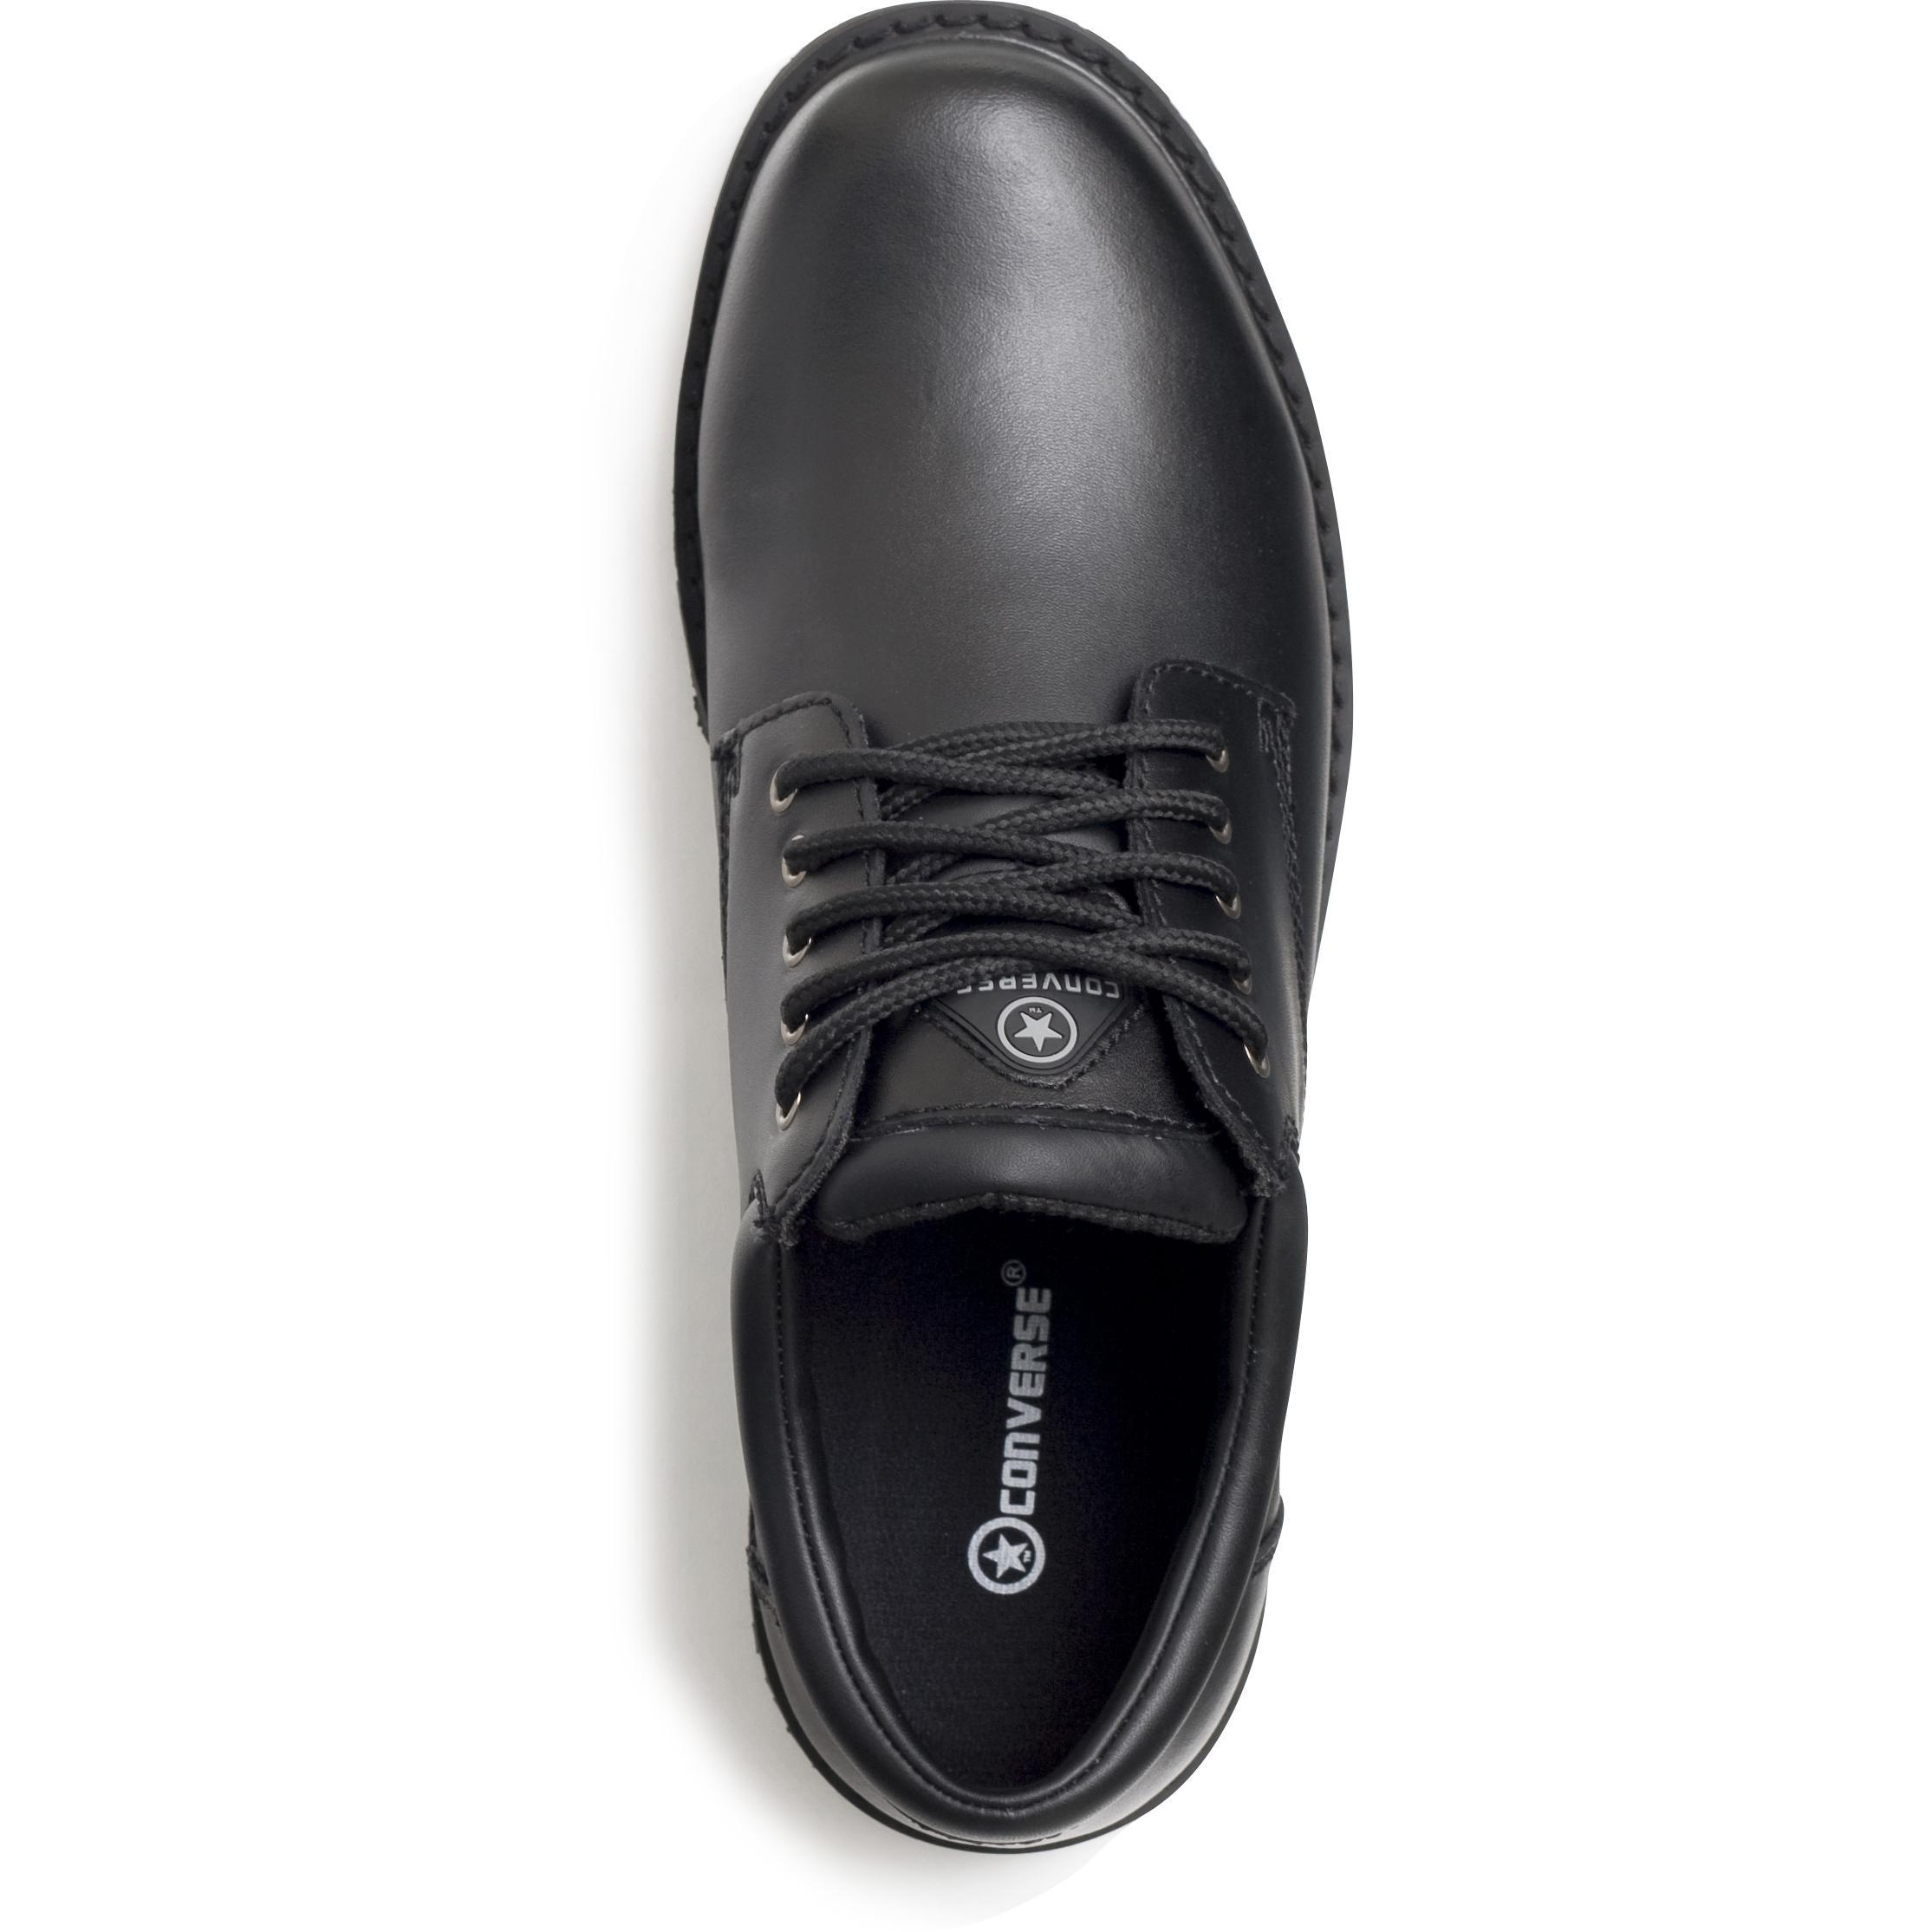 Converse Slip Resistant Oxford - Lehigh Outfitters b07c08cee